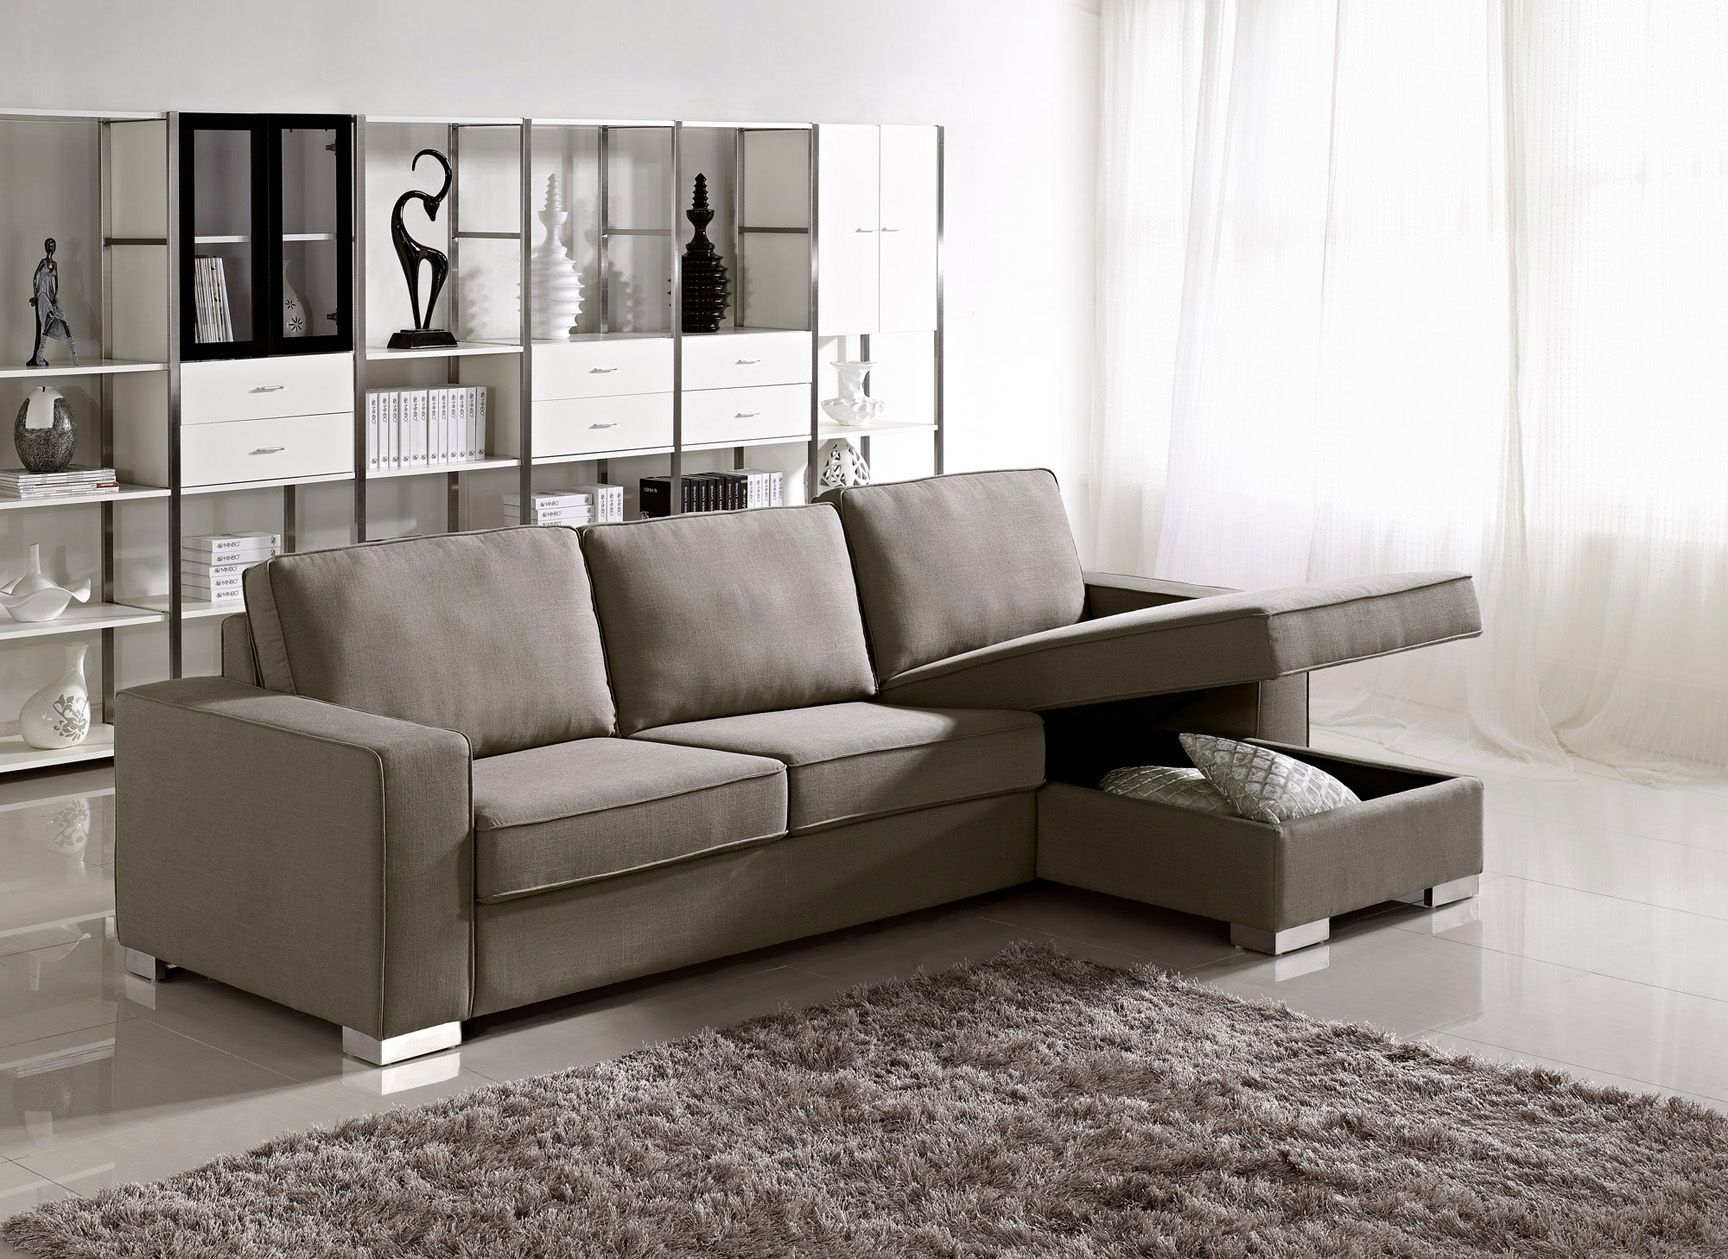 Stunning Sofa Sleeper With Storage Pertaining To Furniture Modern Sectional Sofas Cheap Prices With Extra Large